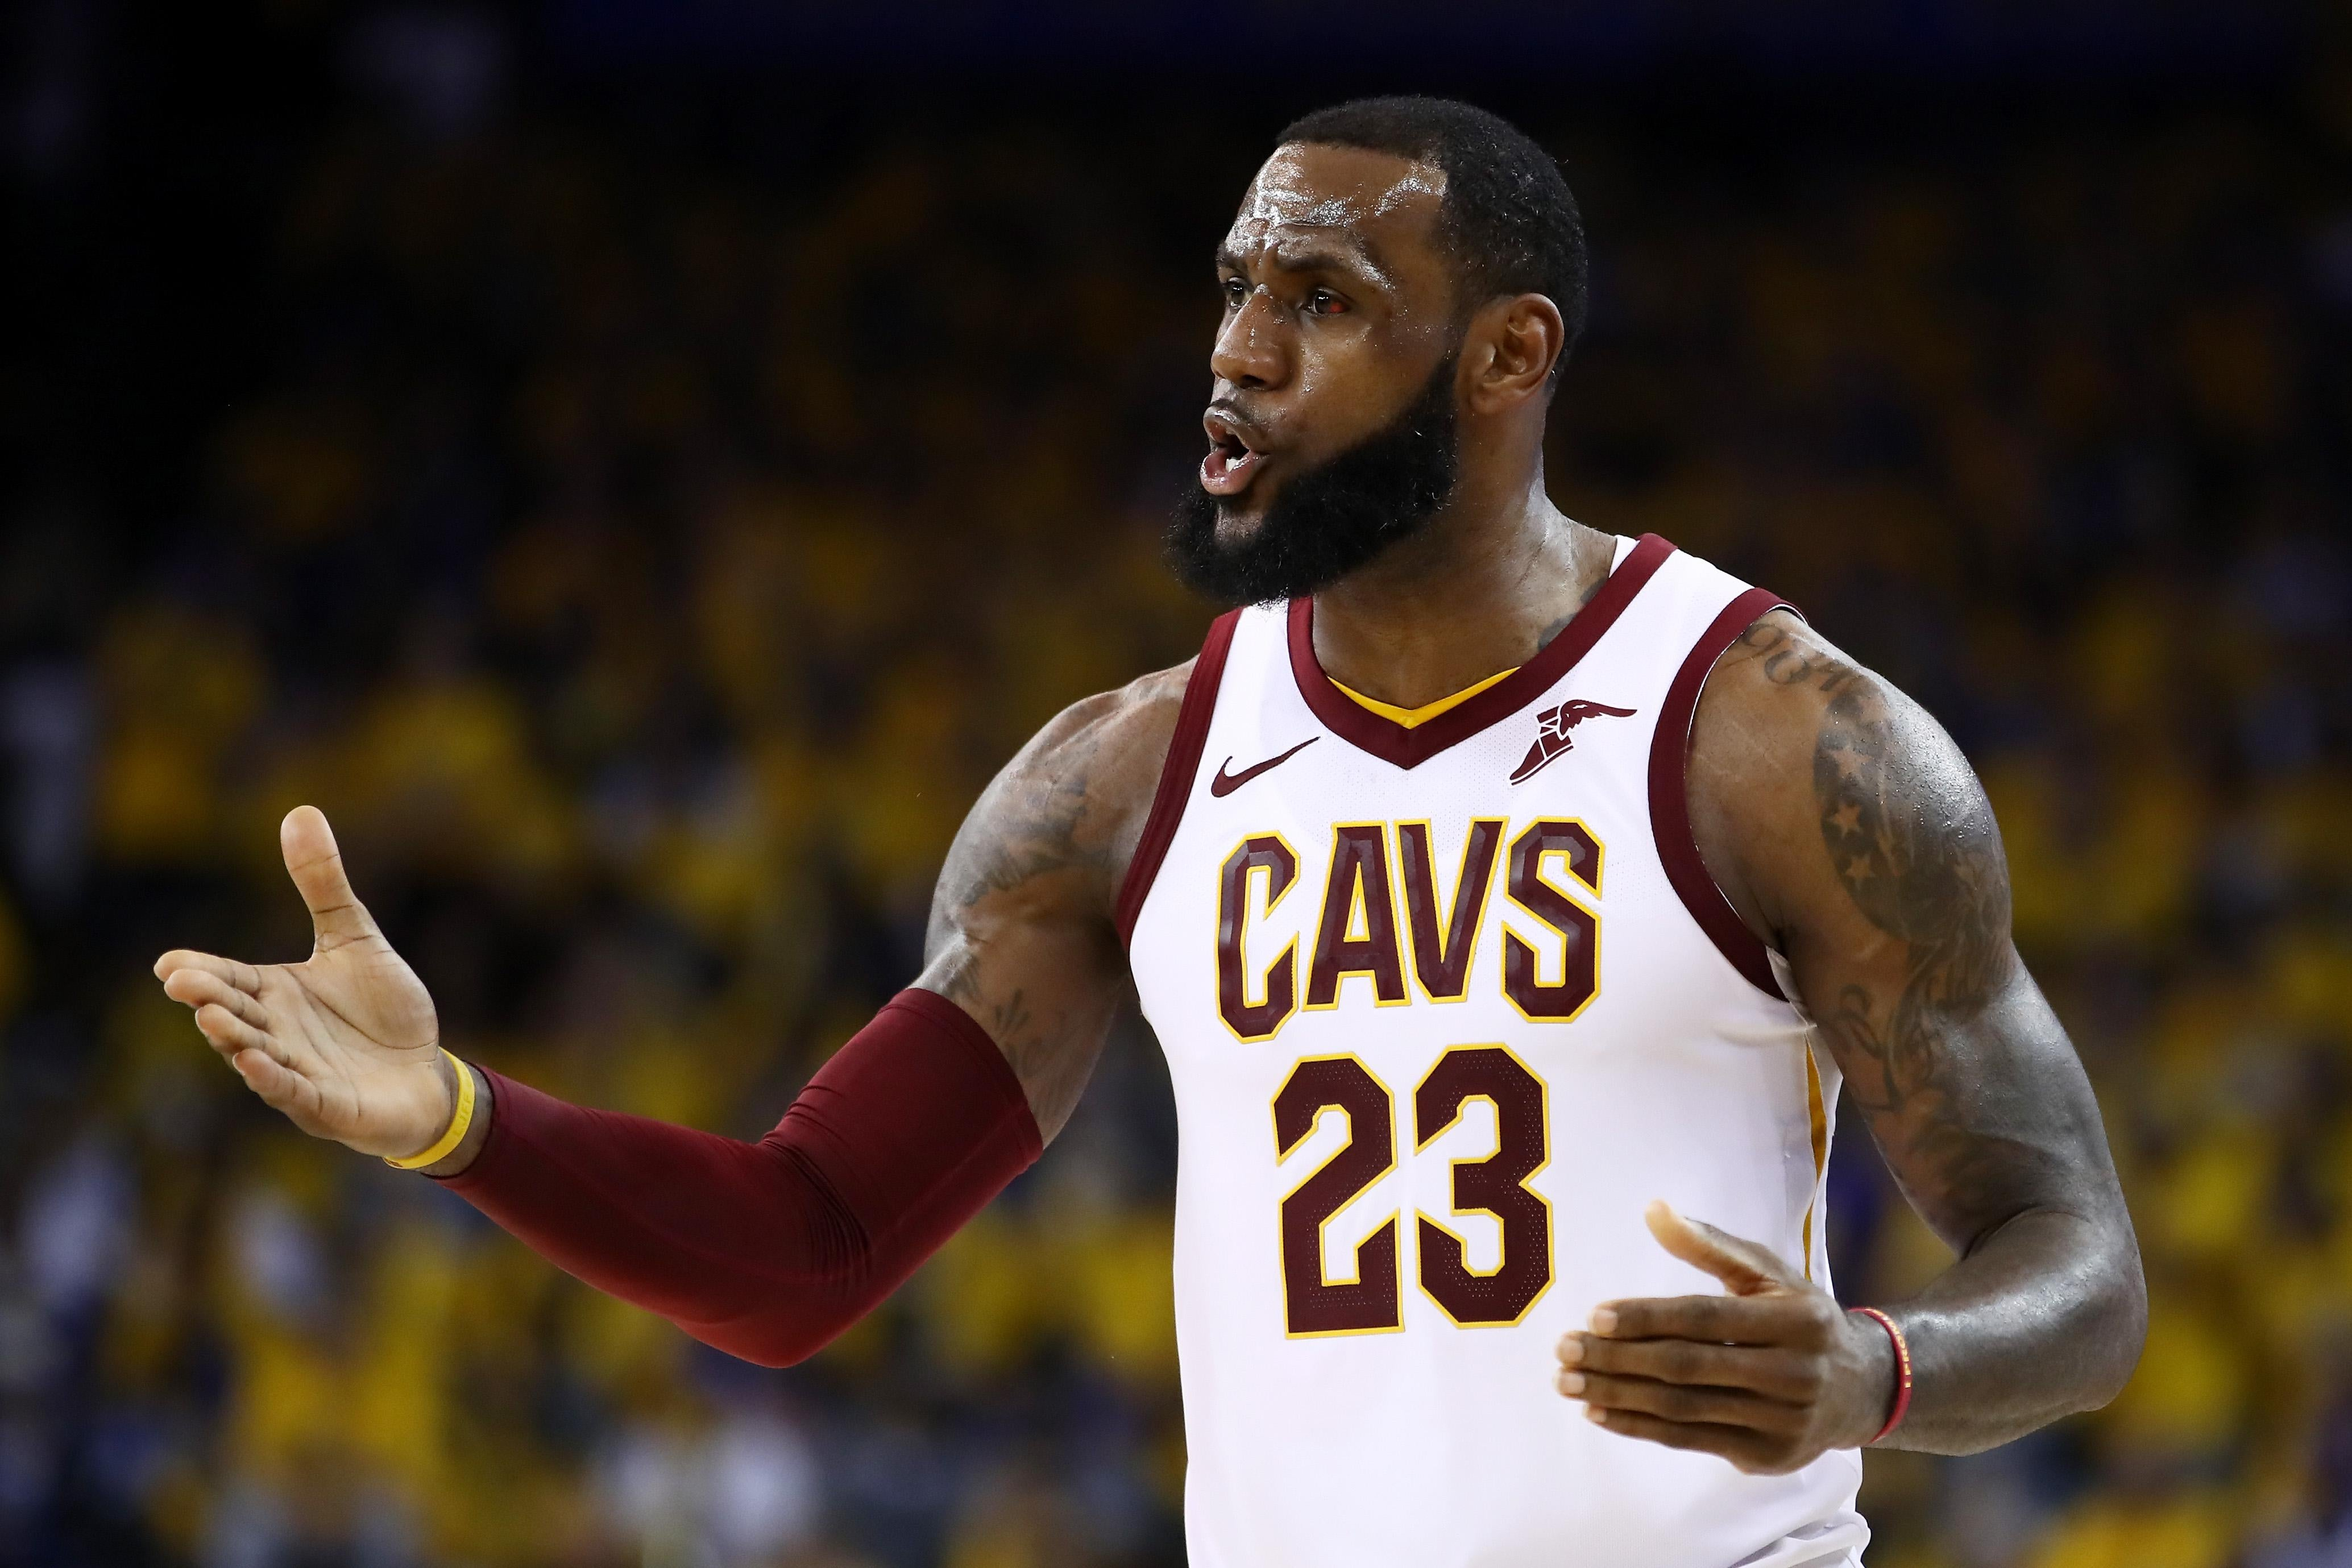 LeBron James #23 of the Cleveland Cavaliers reacts against the Golden State Warriors in Game 2 of the 2018 NBA Finals at ORACLE Arena on June 3, 2018 in Oakland, California.